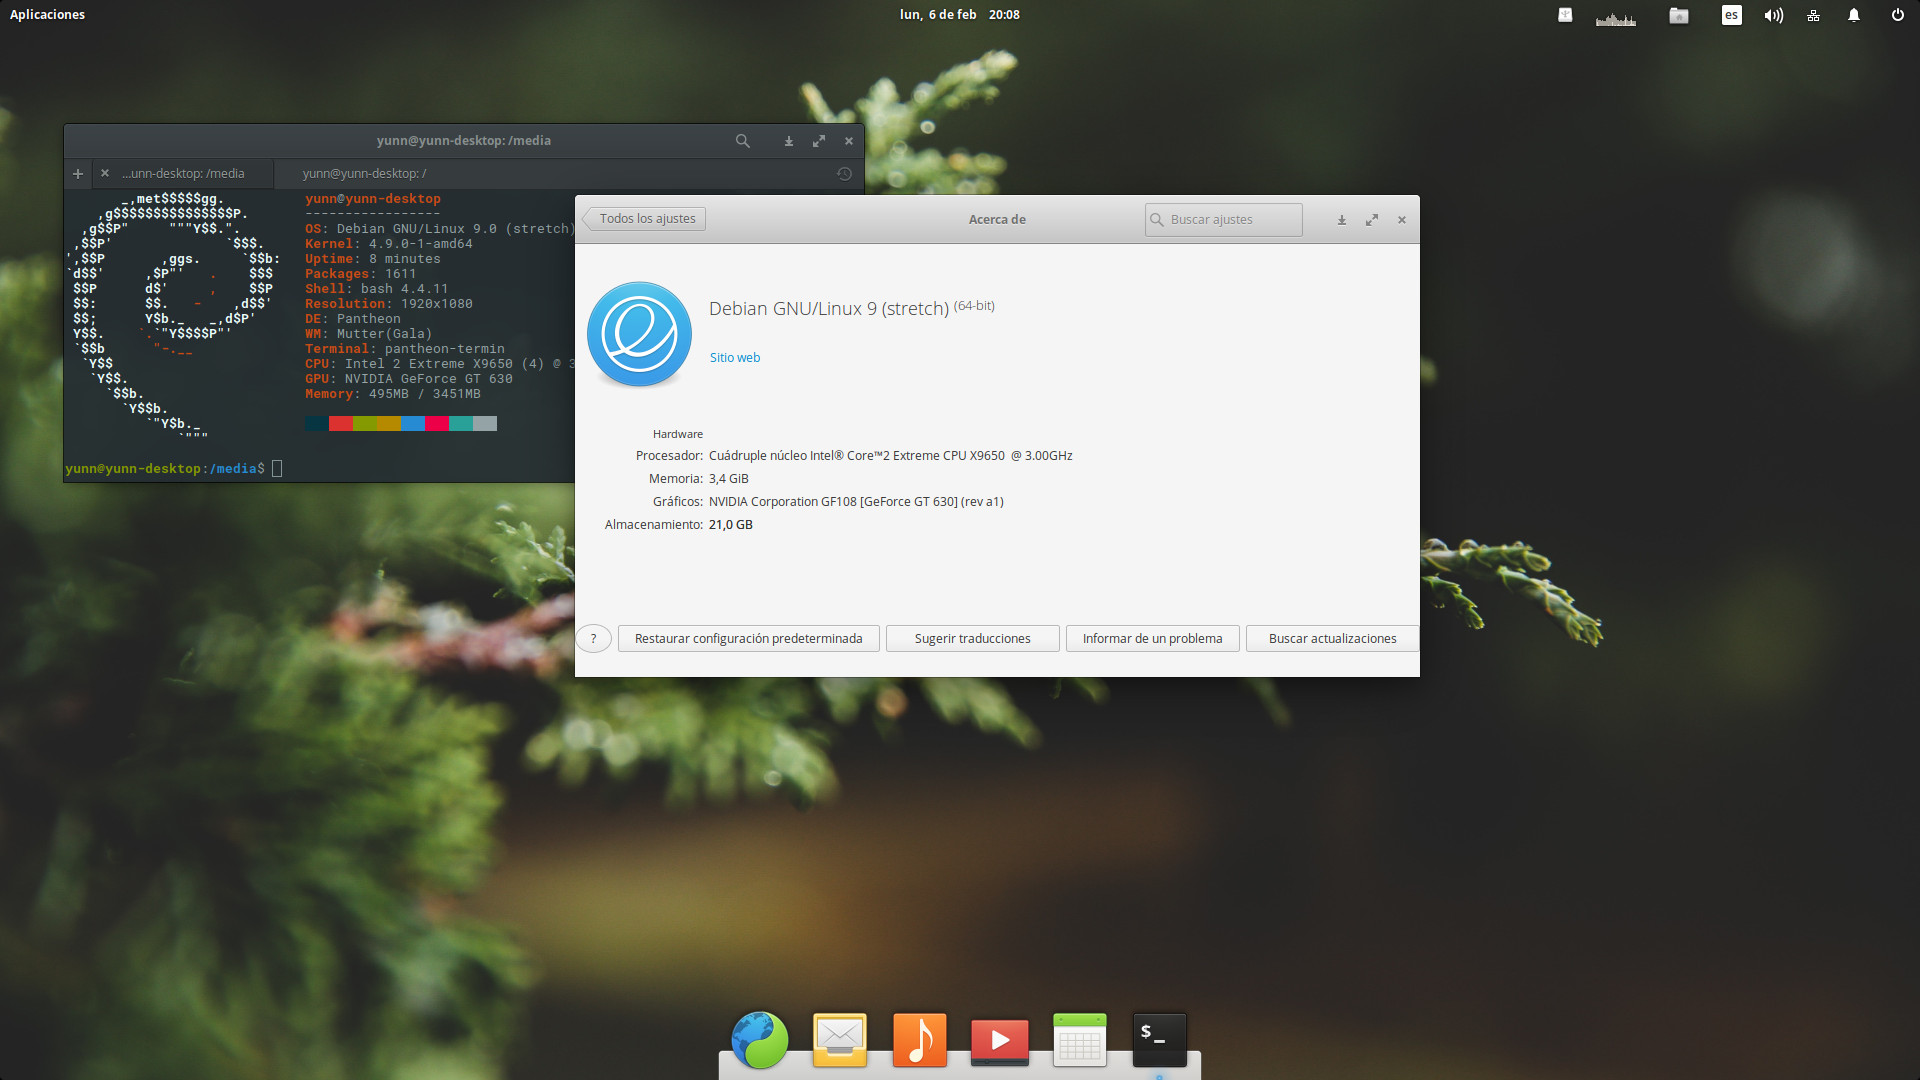 Como instalar Pantheon en Debian 9 Stretch